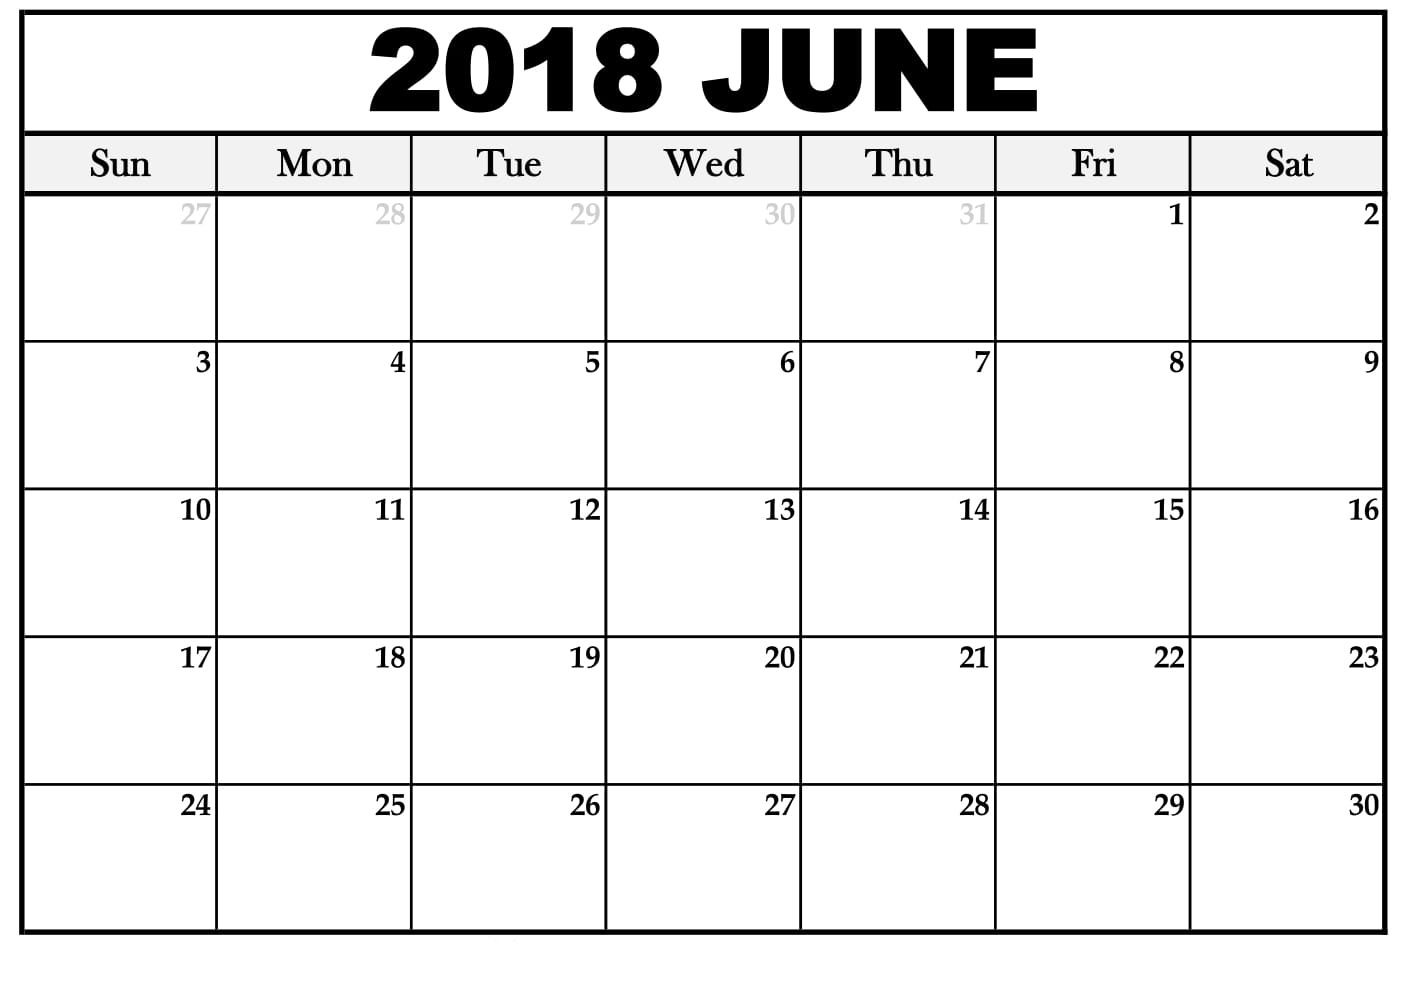 2018 June Calendar Printable Template